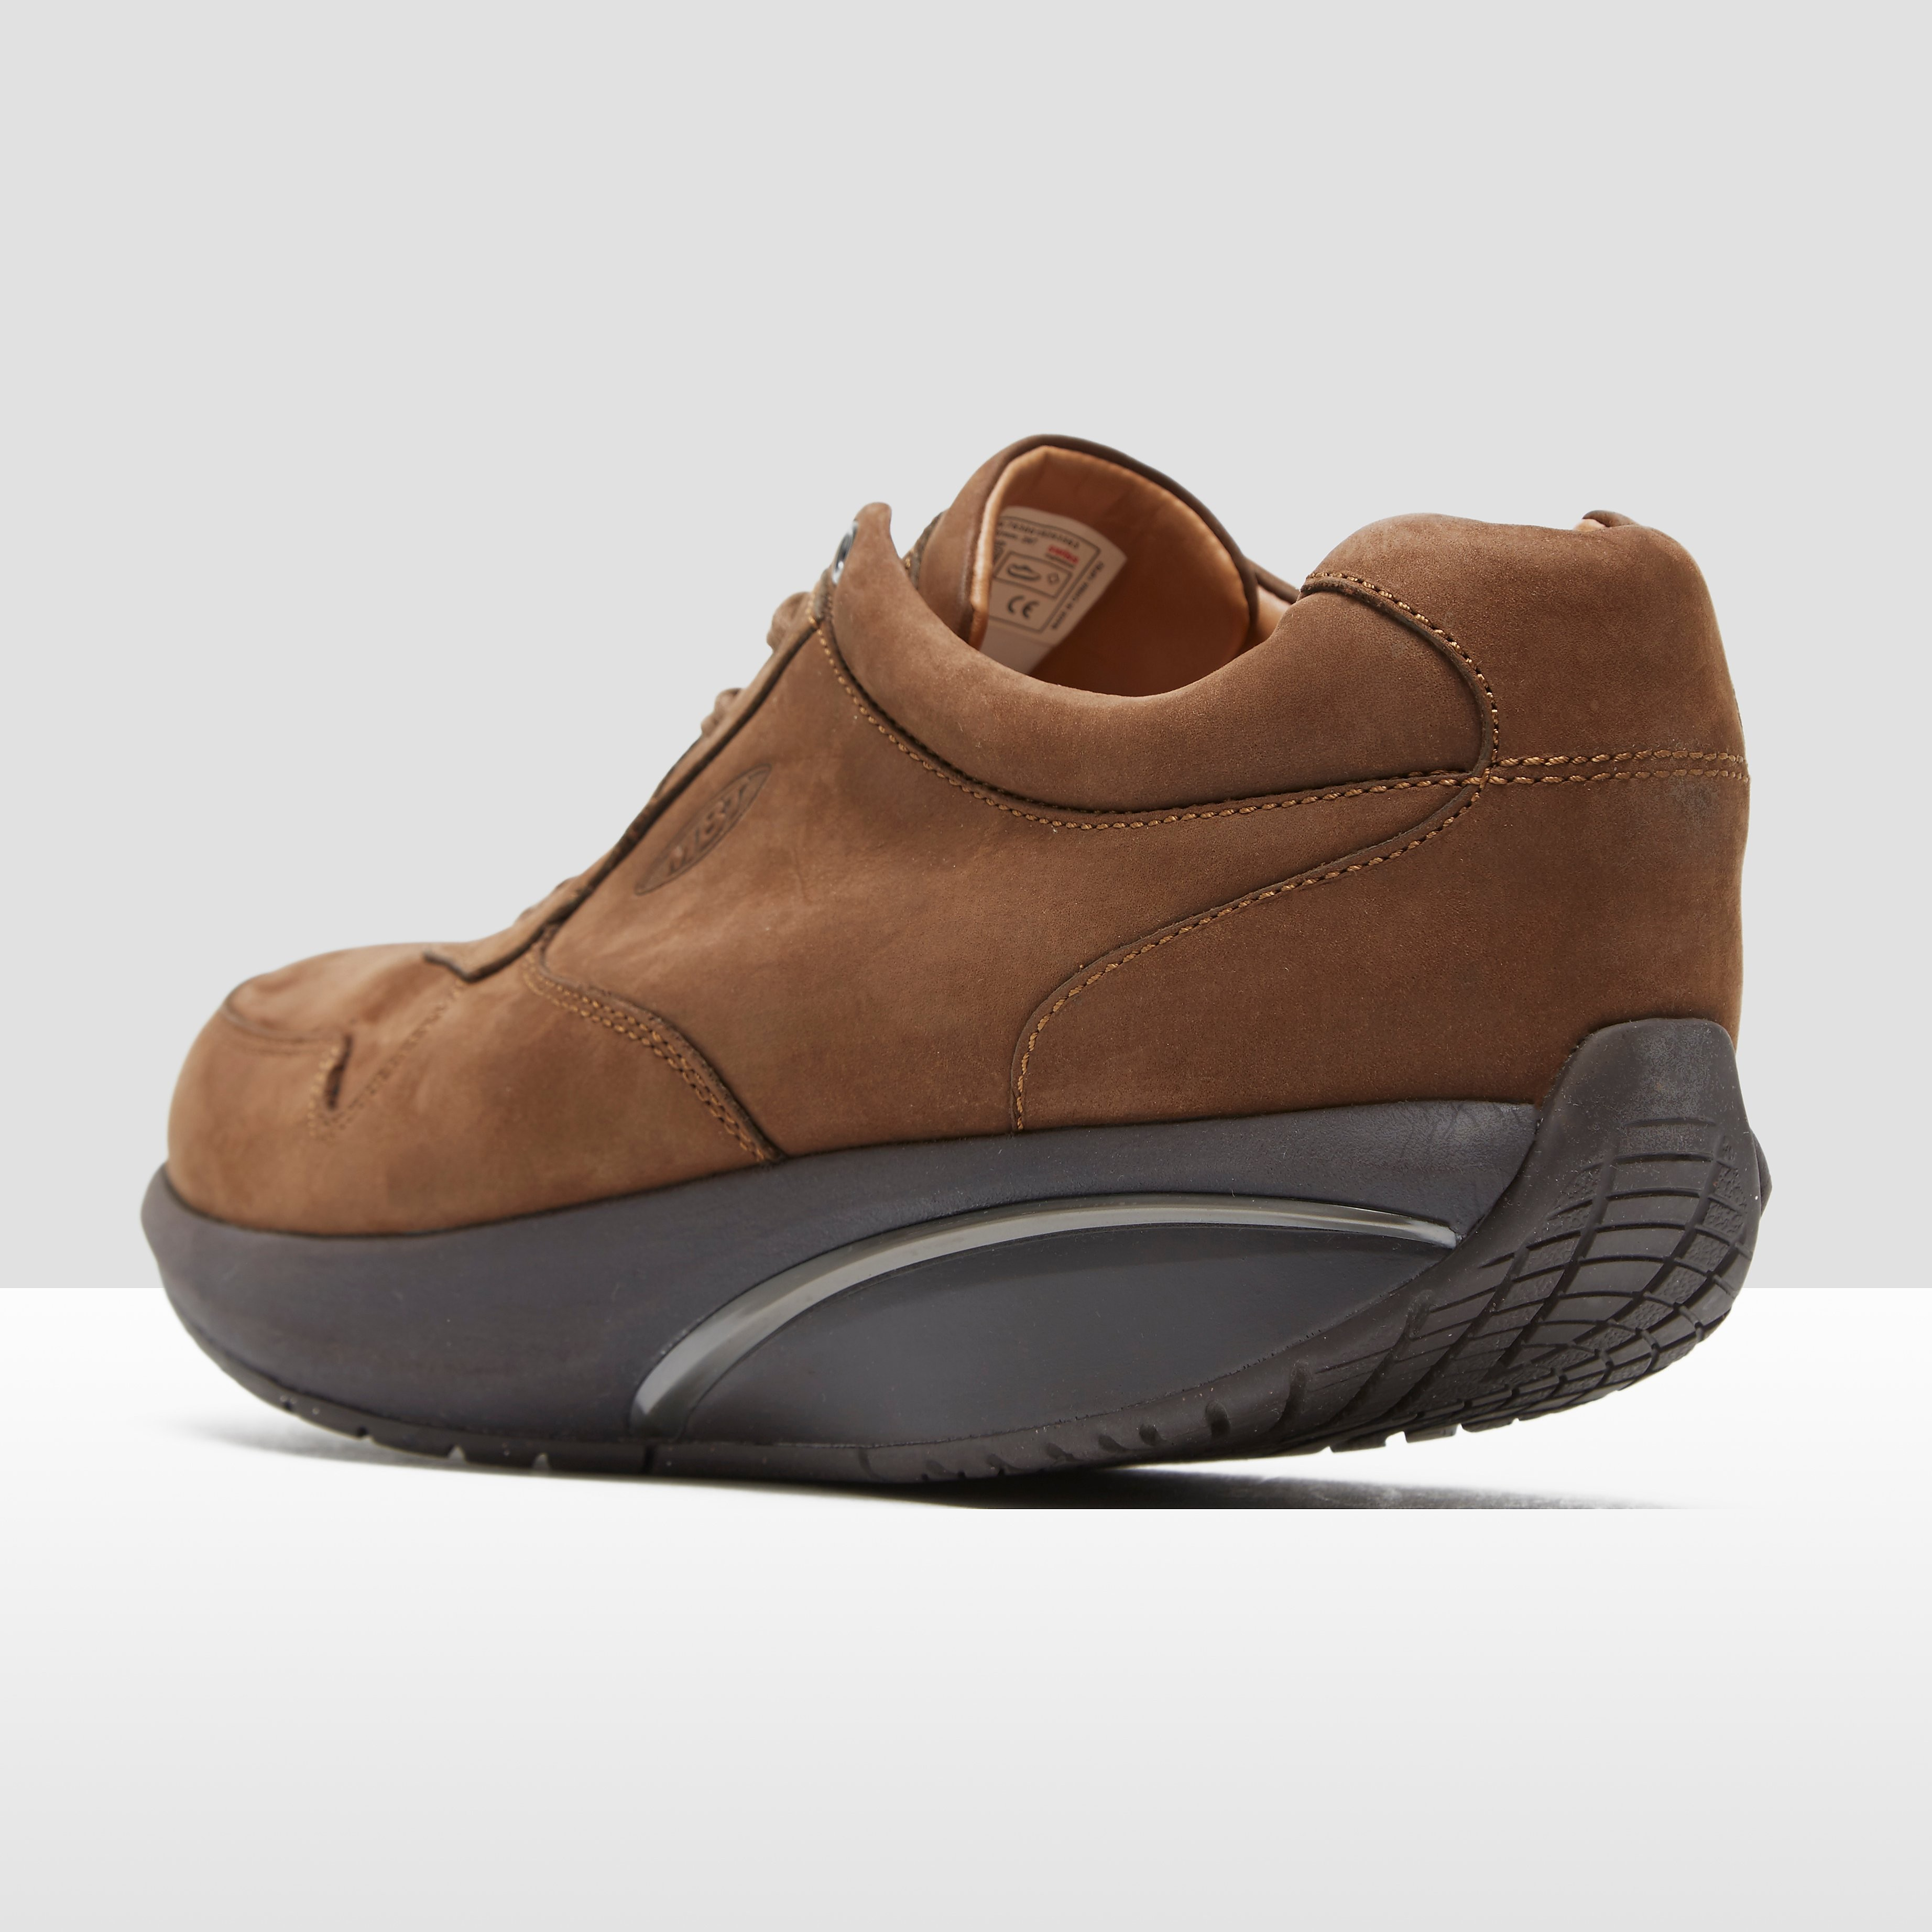 MBT Said 6S Men's Shoes